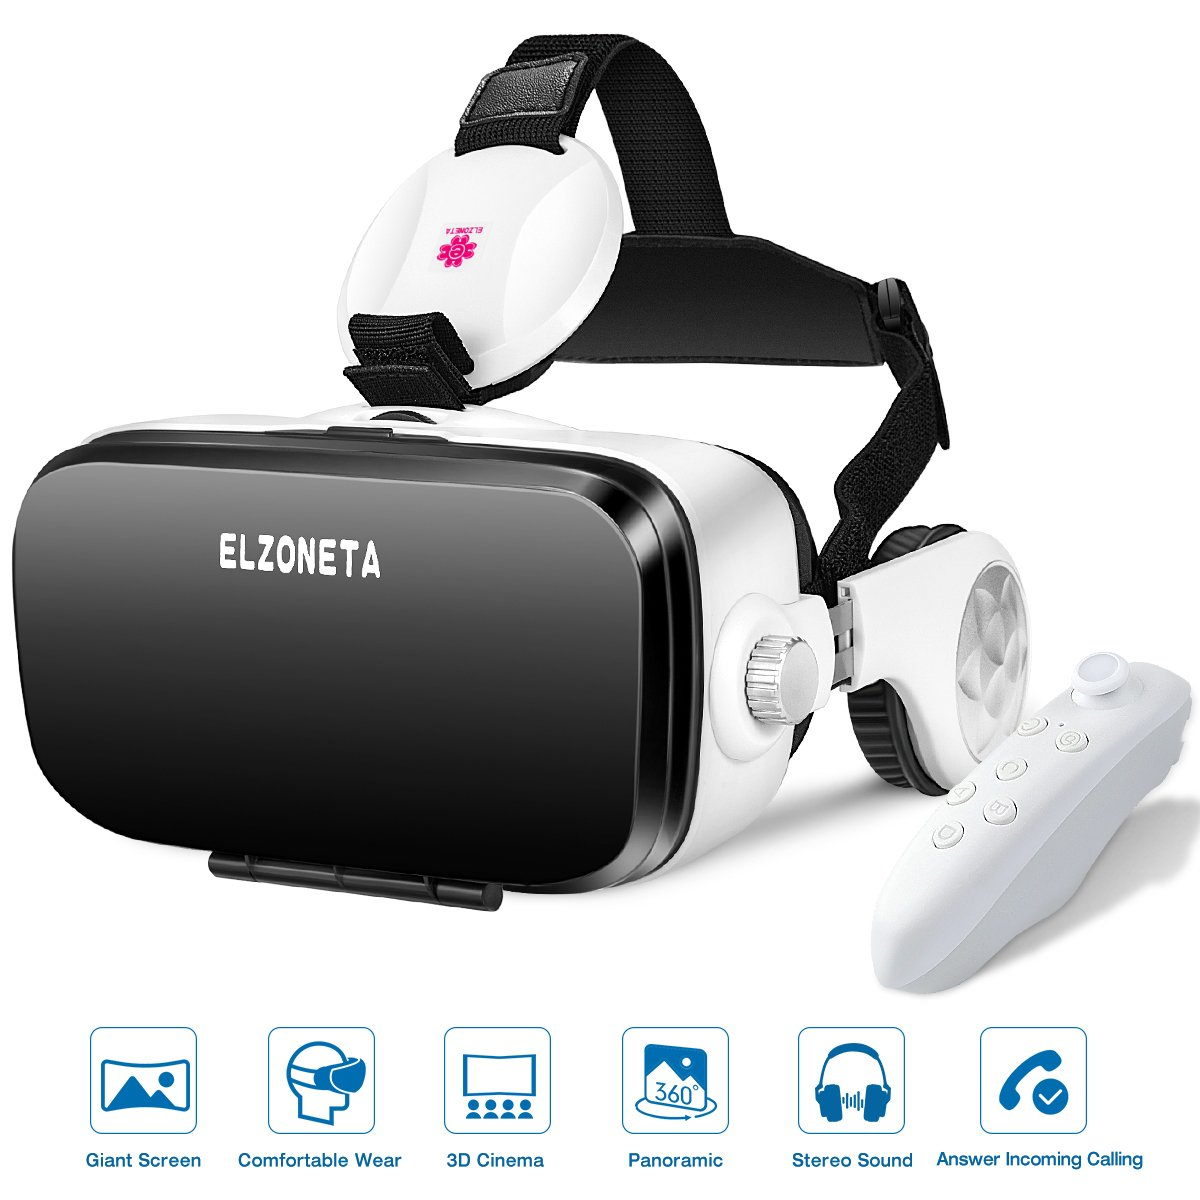 Reality Virtual VR Headset 3D Glasses - with Bluetooth Remote Controller and Stereo Sound Earphones for Video Games, Adjustable Lens Reality Helmet for iphone, Android Mobile Phone